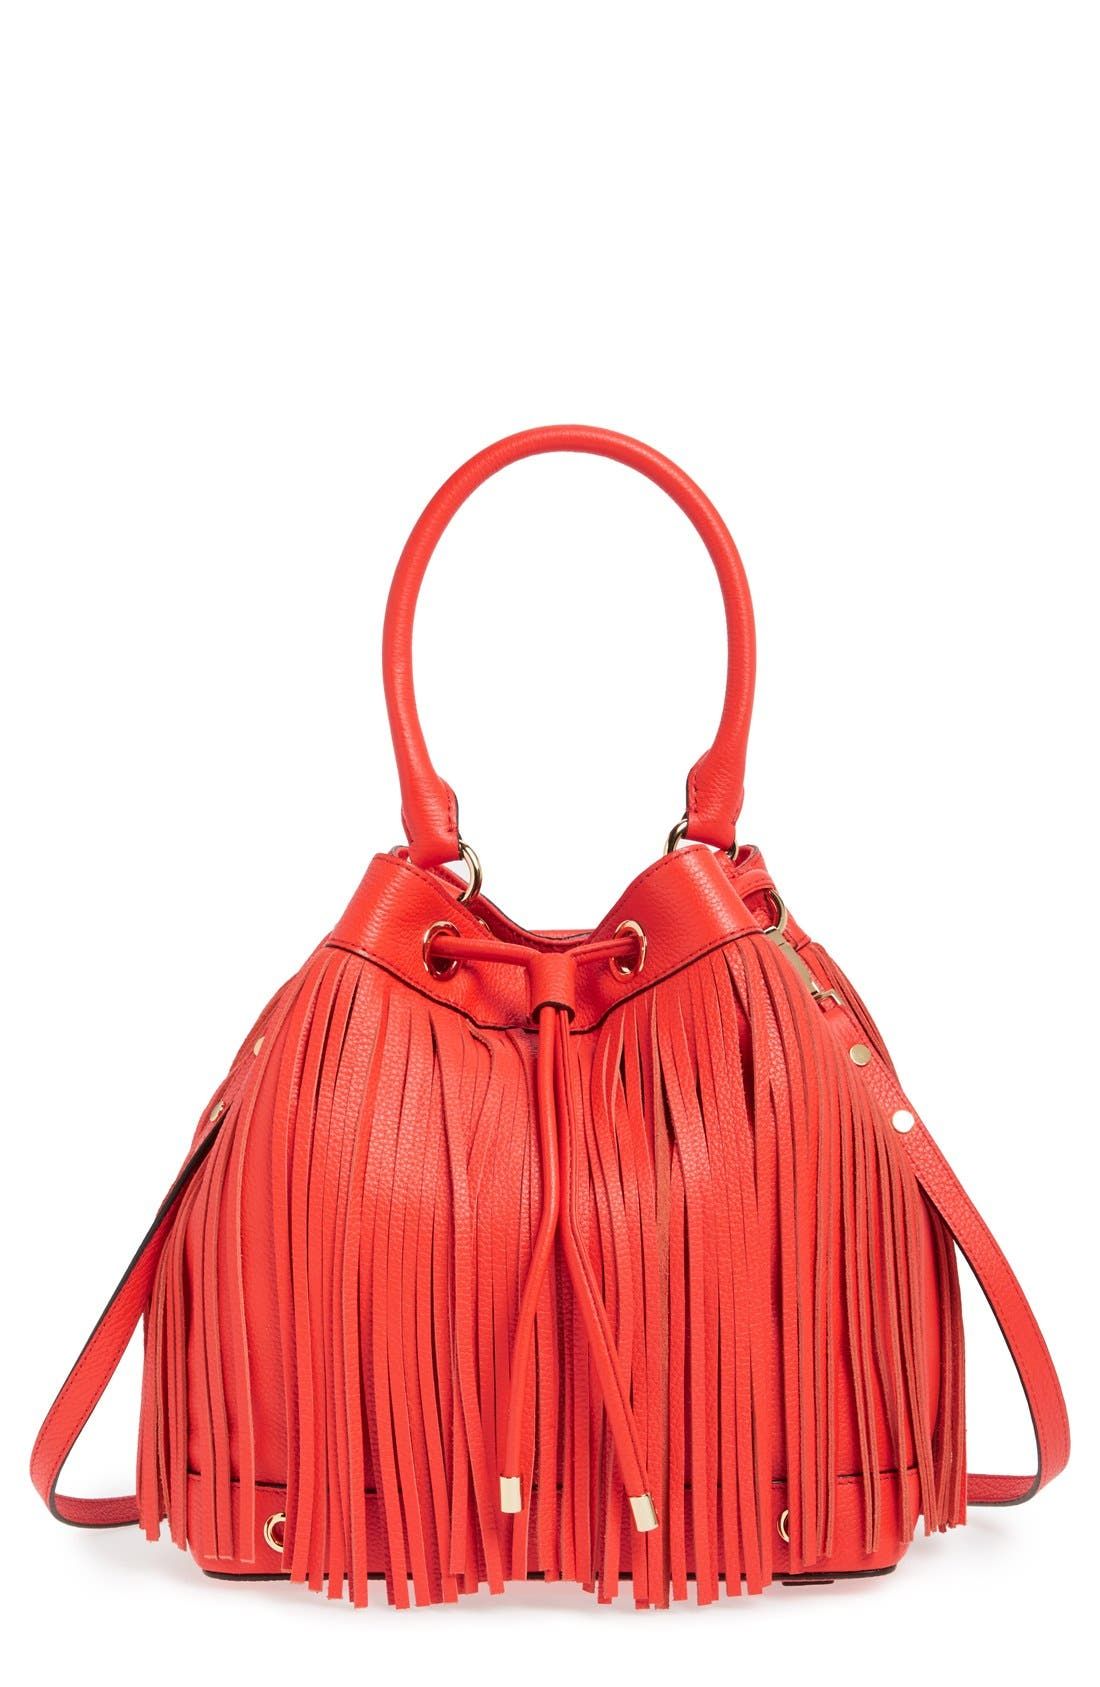 'Essex' Fringed Leather Bucket Bag,                         Main,                         color, Vermilion Red